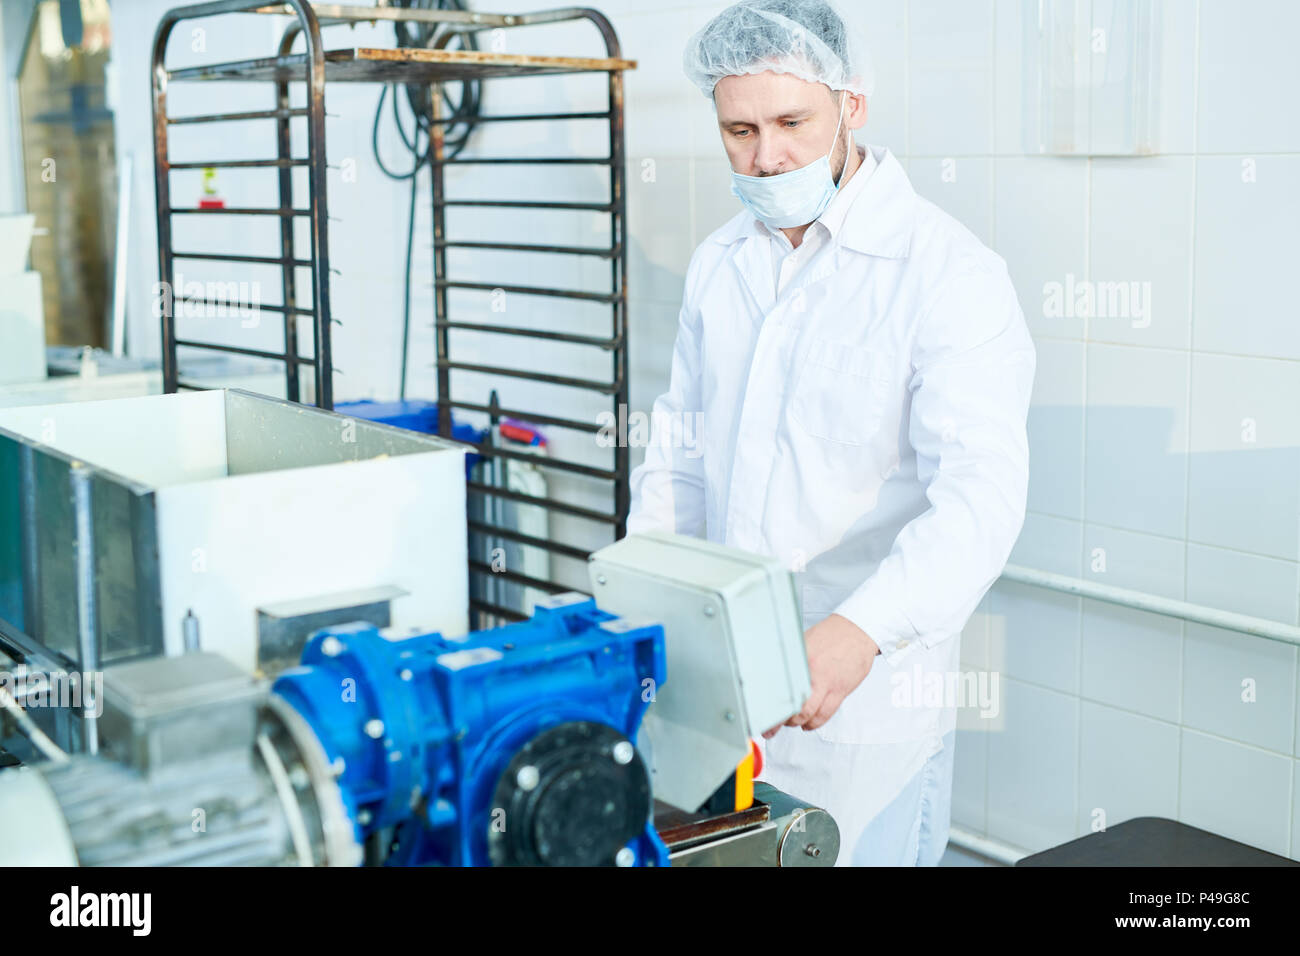 Confectioner working with machine at factory - Stock Image